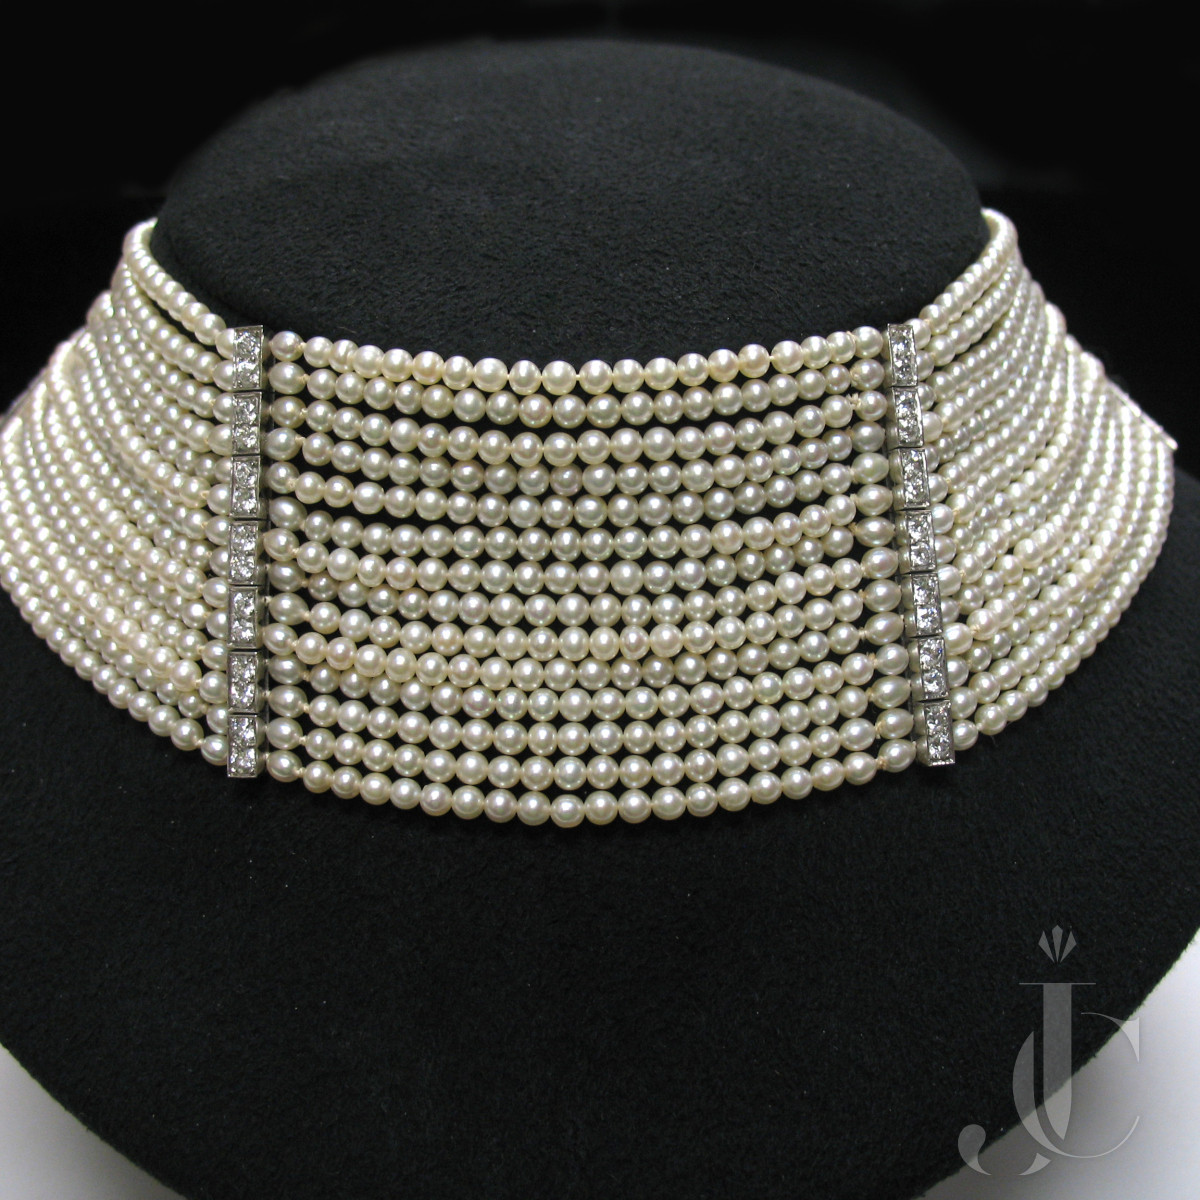 Platinum Natural Pearl and Diamond Necklace, Tiffany & Co. circa 1925 Formerly the property of Mrs. Horace Dodge - Auto Manufacturer